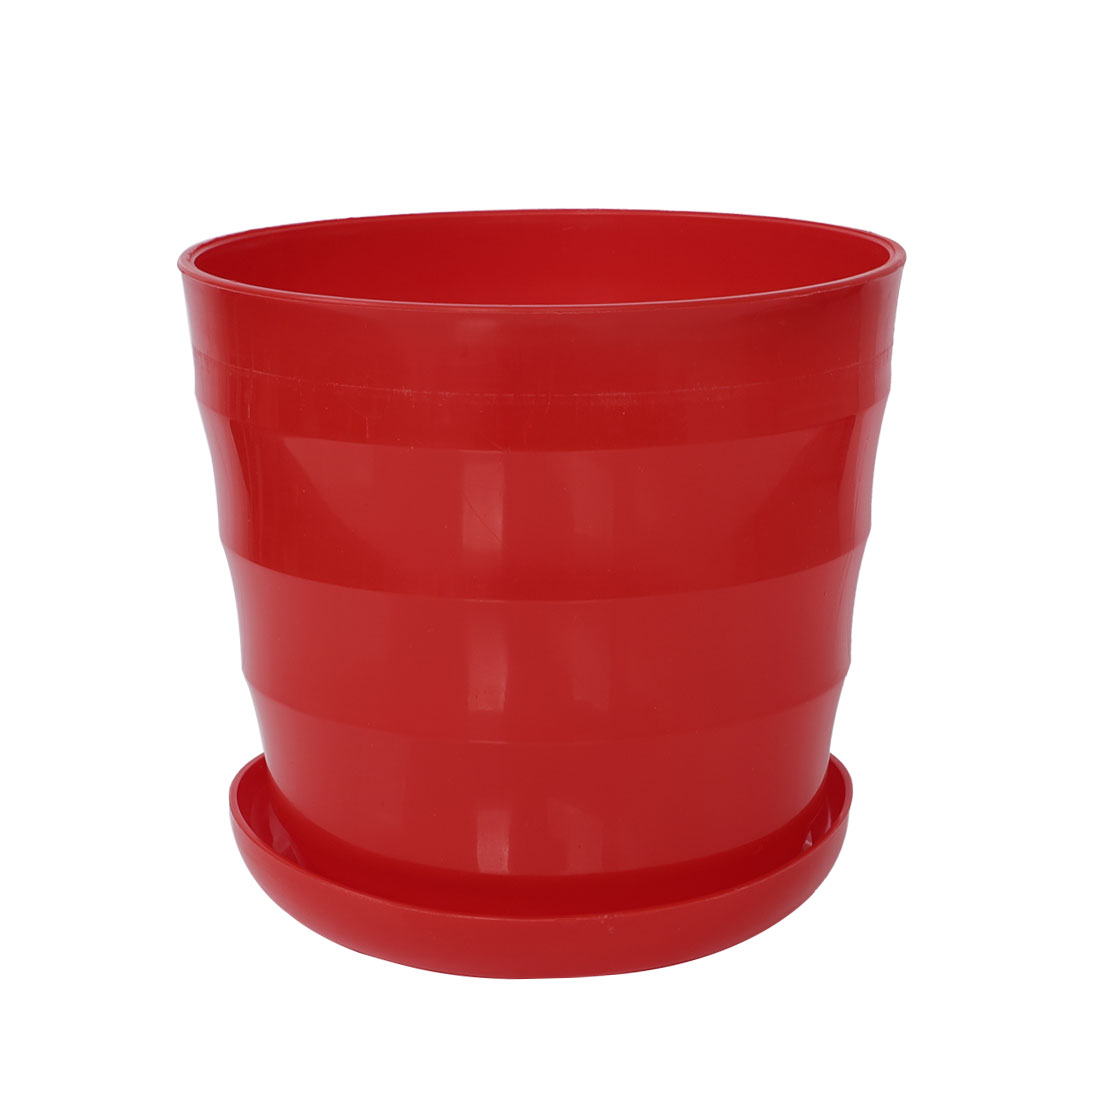 19cm Dia Plastic Round Plant Planter Holder Flower Pot Home Garden Decor Red